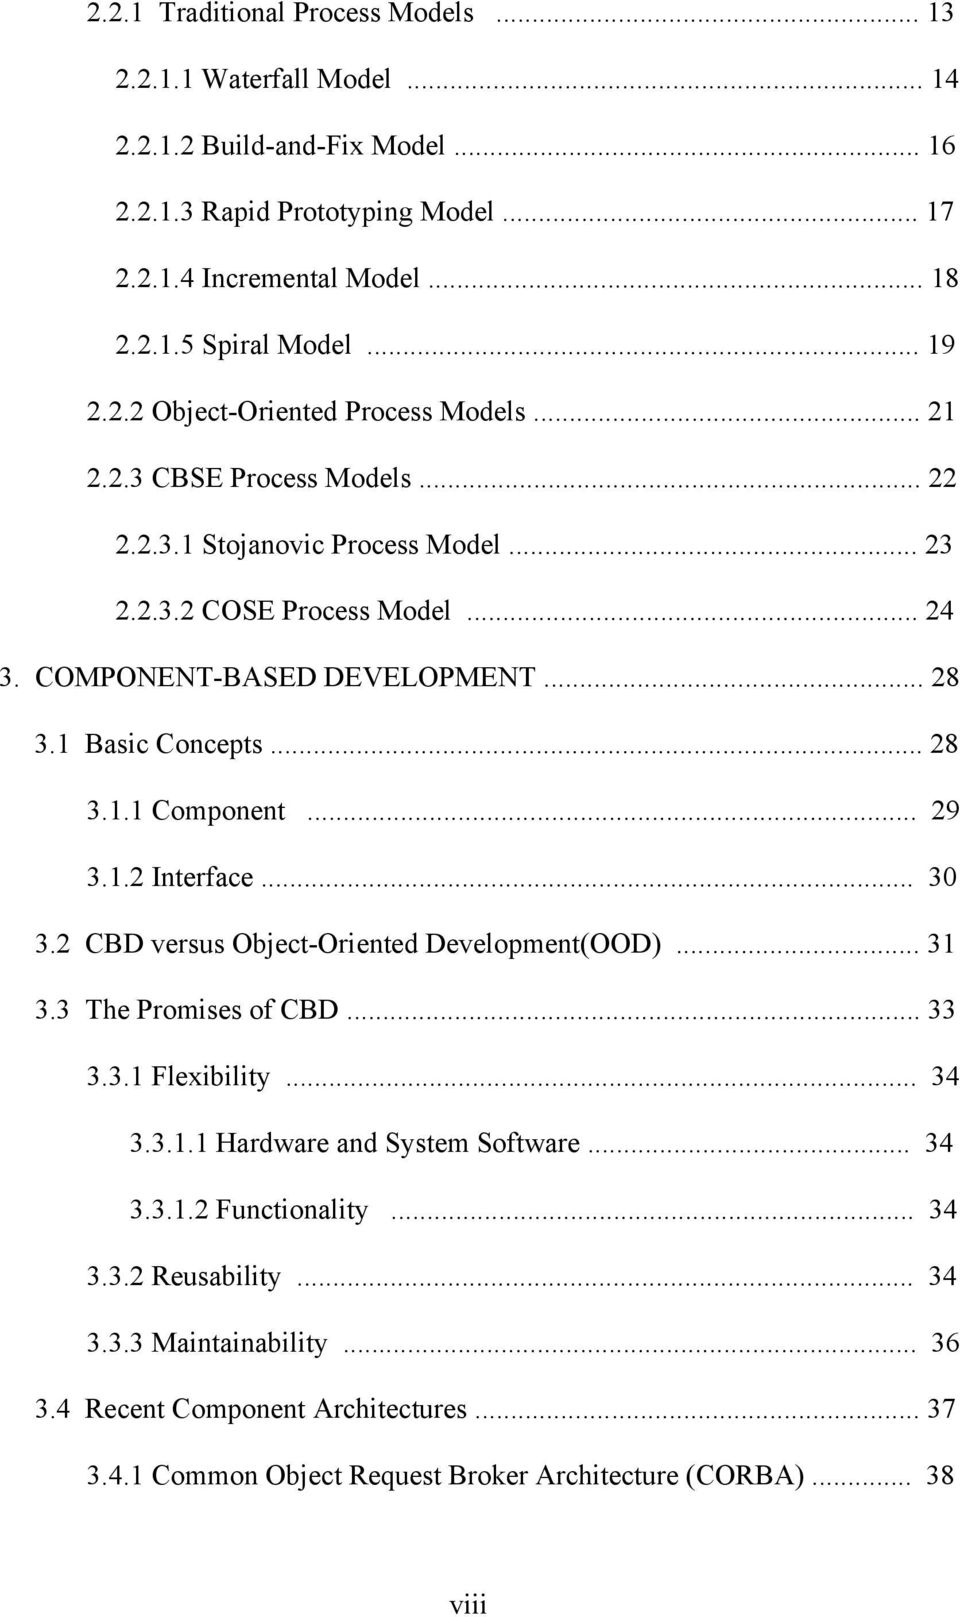 1 Basic Concepts... 28 3.1.1 Component... 29 3.1.2 Interface... 30 3.2 CBD versus Object-Oriented Development(OOD)... 31 3.3 The Promises of CBD... 33 3.3.1 Flexibility... 34 3.3.1.1 Hardware and System Software.